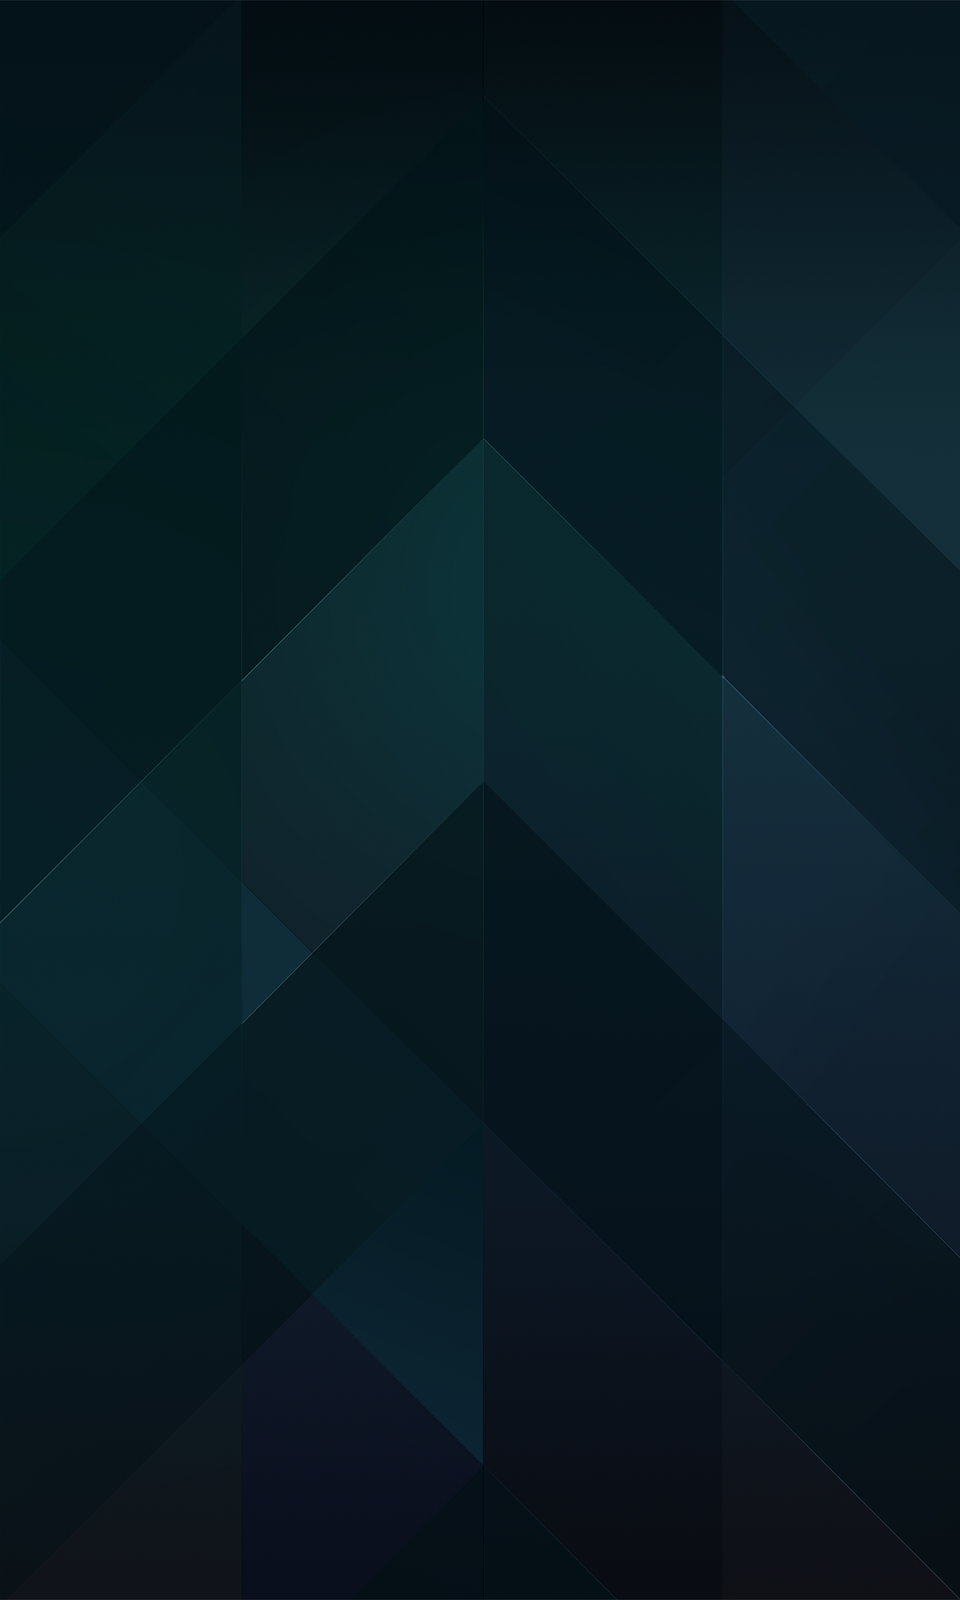 Meizu Mx4 Stock Wallpapers